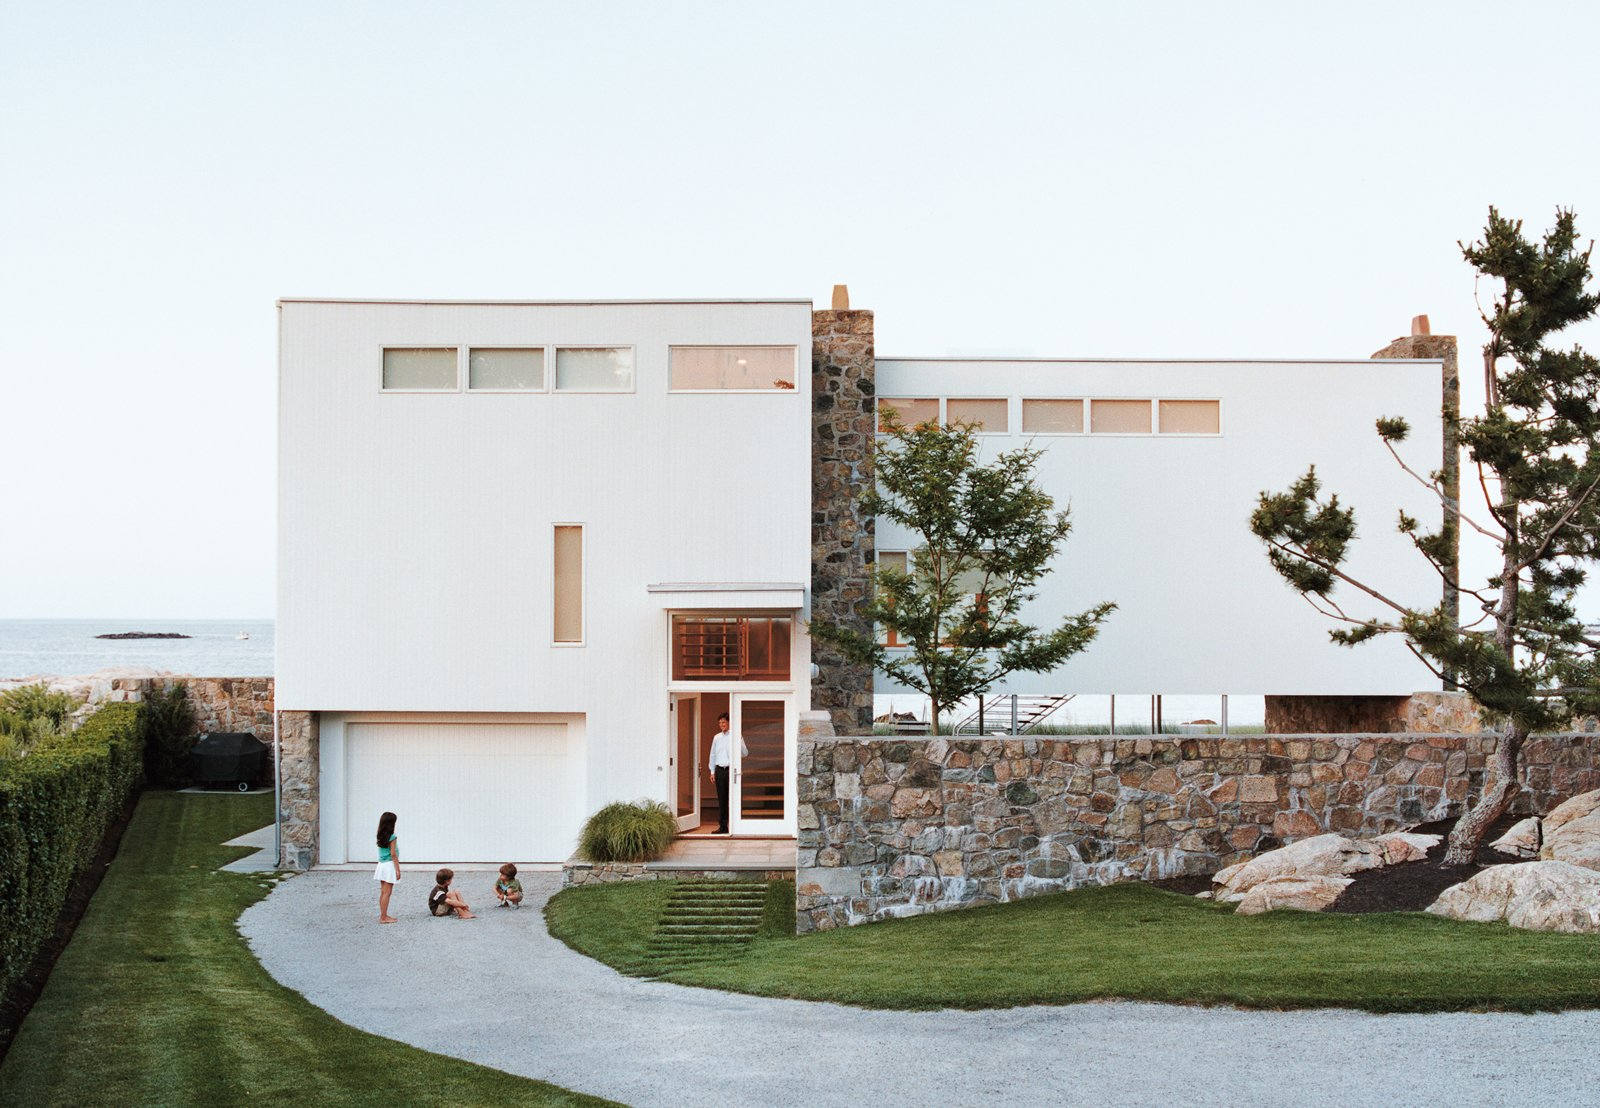 "When this minimalist, L-shaped modern structure was first erected on the Massachusetts coastline, neighbors said it ""looked like the ladies' wing at Alcatraz,"" according to the original resident, John Hagerty. Decades later, guests are still stopping by to explore this inspired Gropius/Breuer collaboration. Exposed pipes and steel staircases provide a streamlined look, while towering glass windows magnify the grandeur of the churning Atlantic Ocean below. Dwell spoke with the current owner, who said the compact-yet-open floor plan results in a ""liberating"" living experience.  Photo 4 of 12 in Design Icon: 10 Buildings by Marcel Breuer"